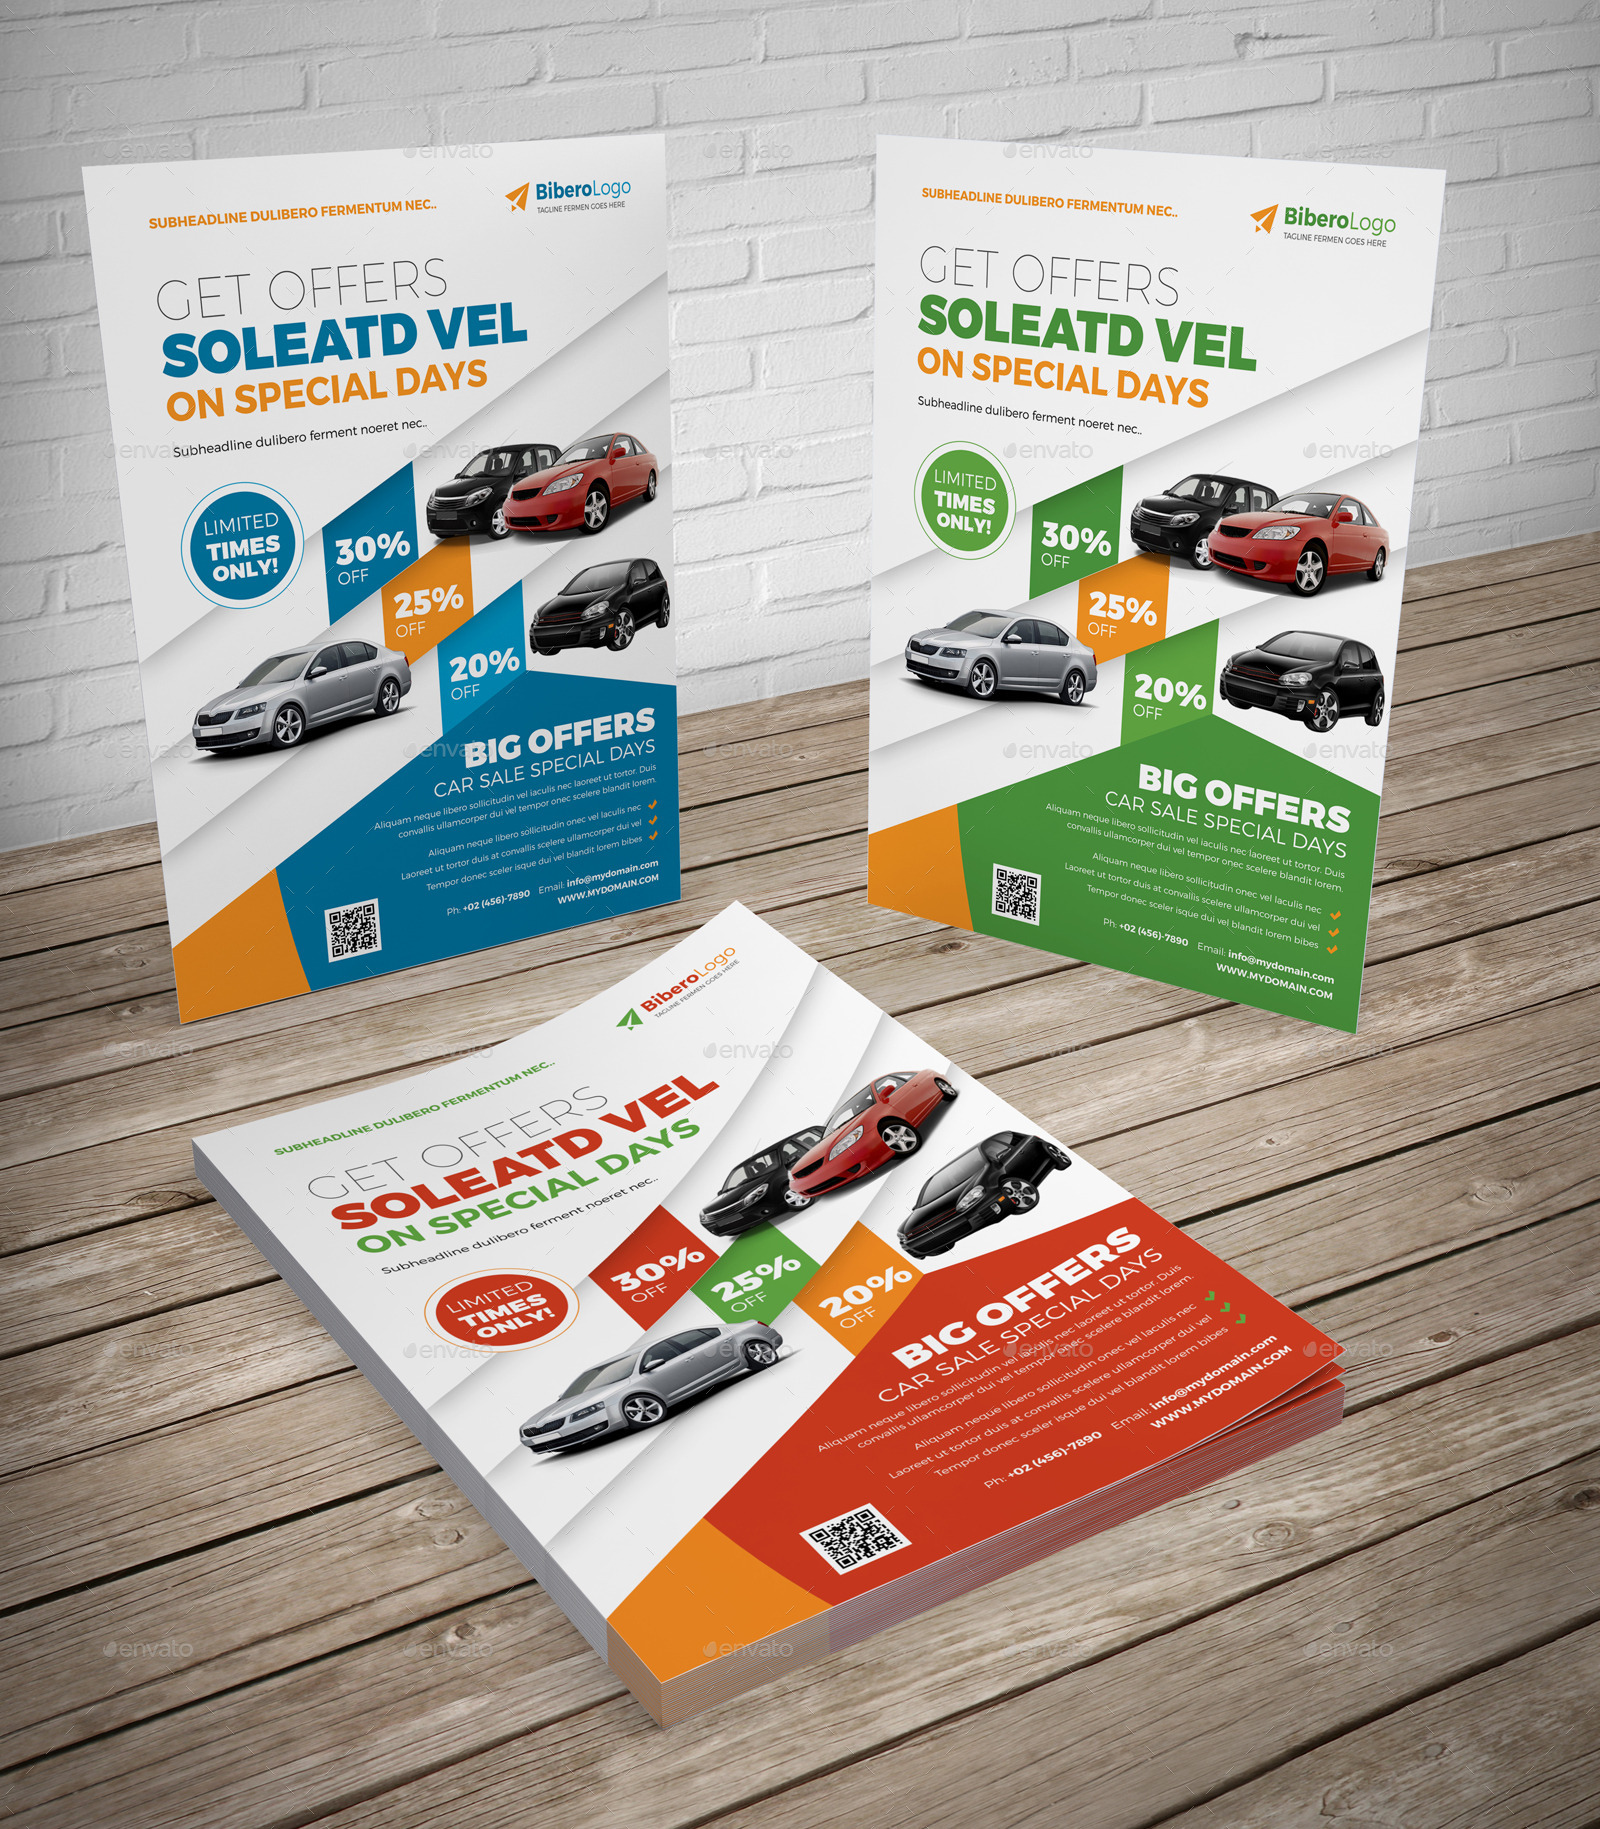 Automotive Car Flyer Ad Indesign Template by Jbn-Comilla   GraphicRiver